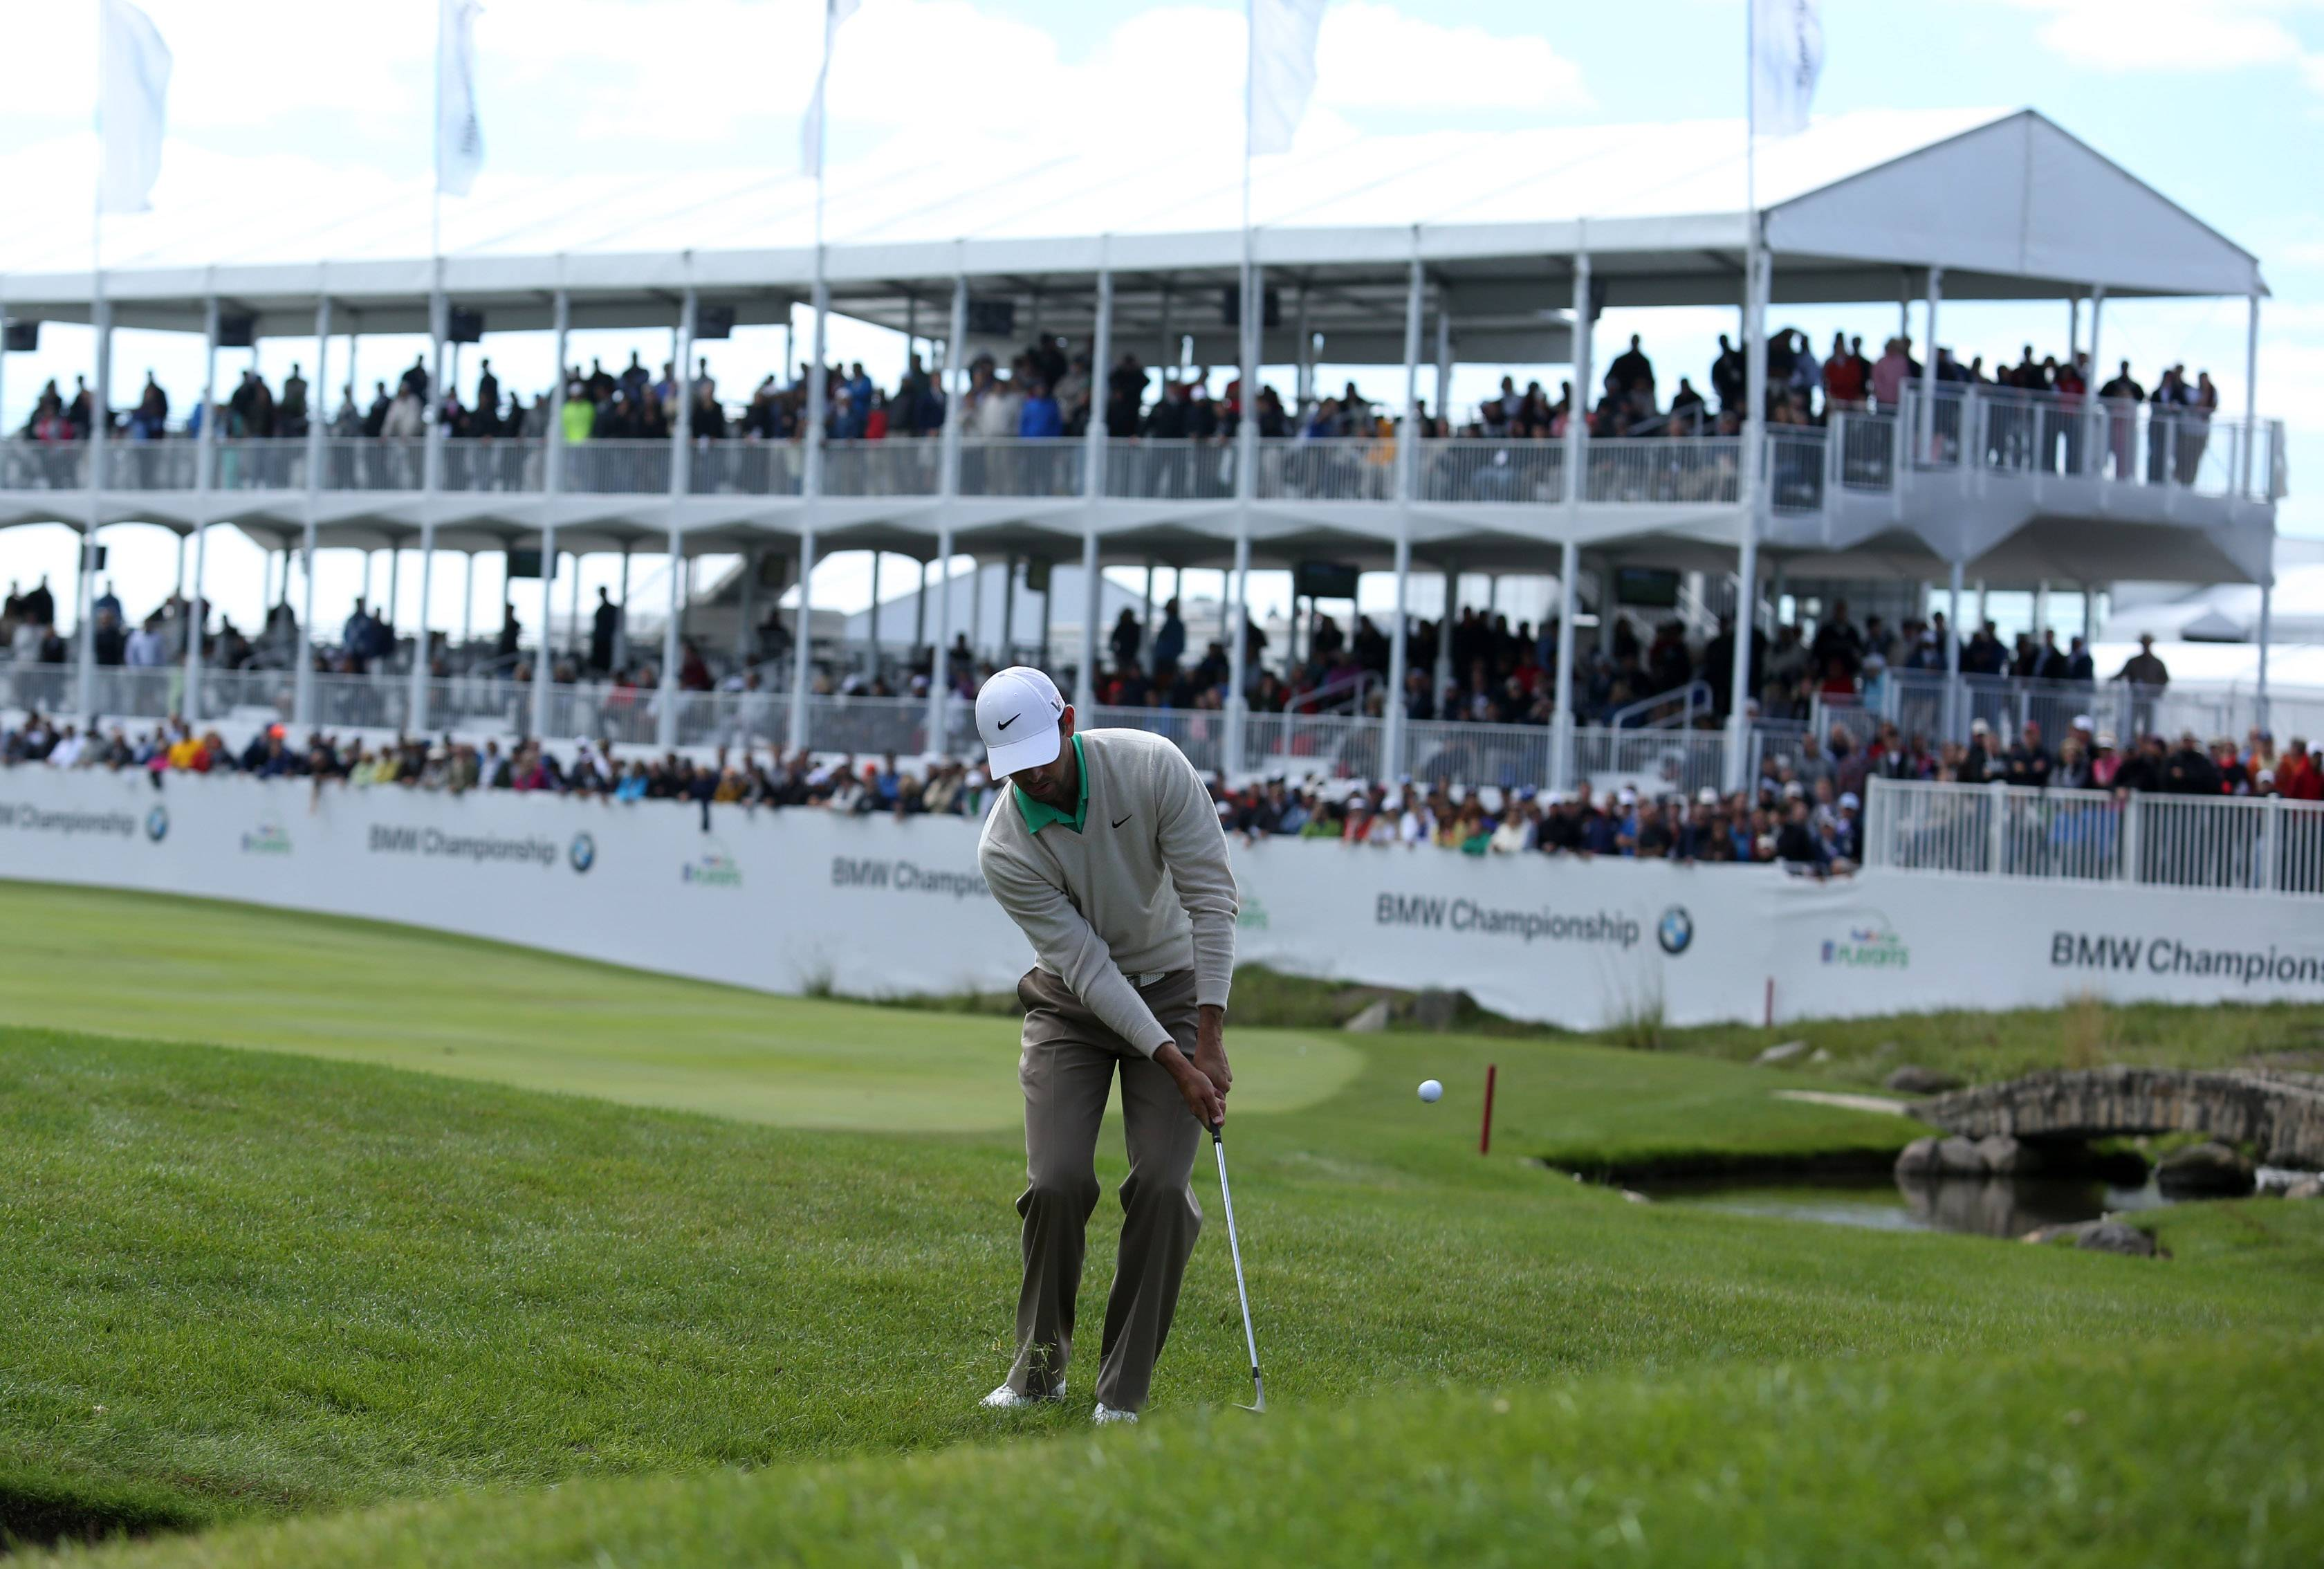 Charl Schwartzel swings from the 18th fairway.